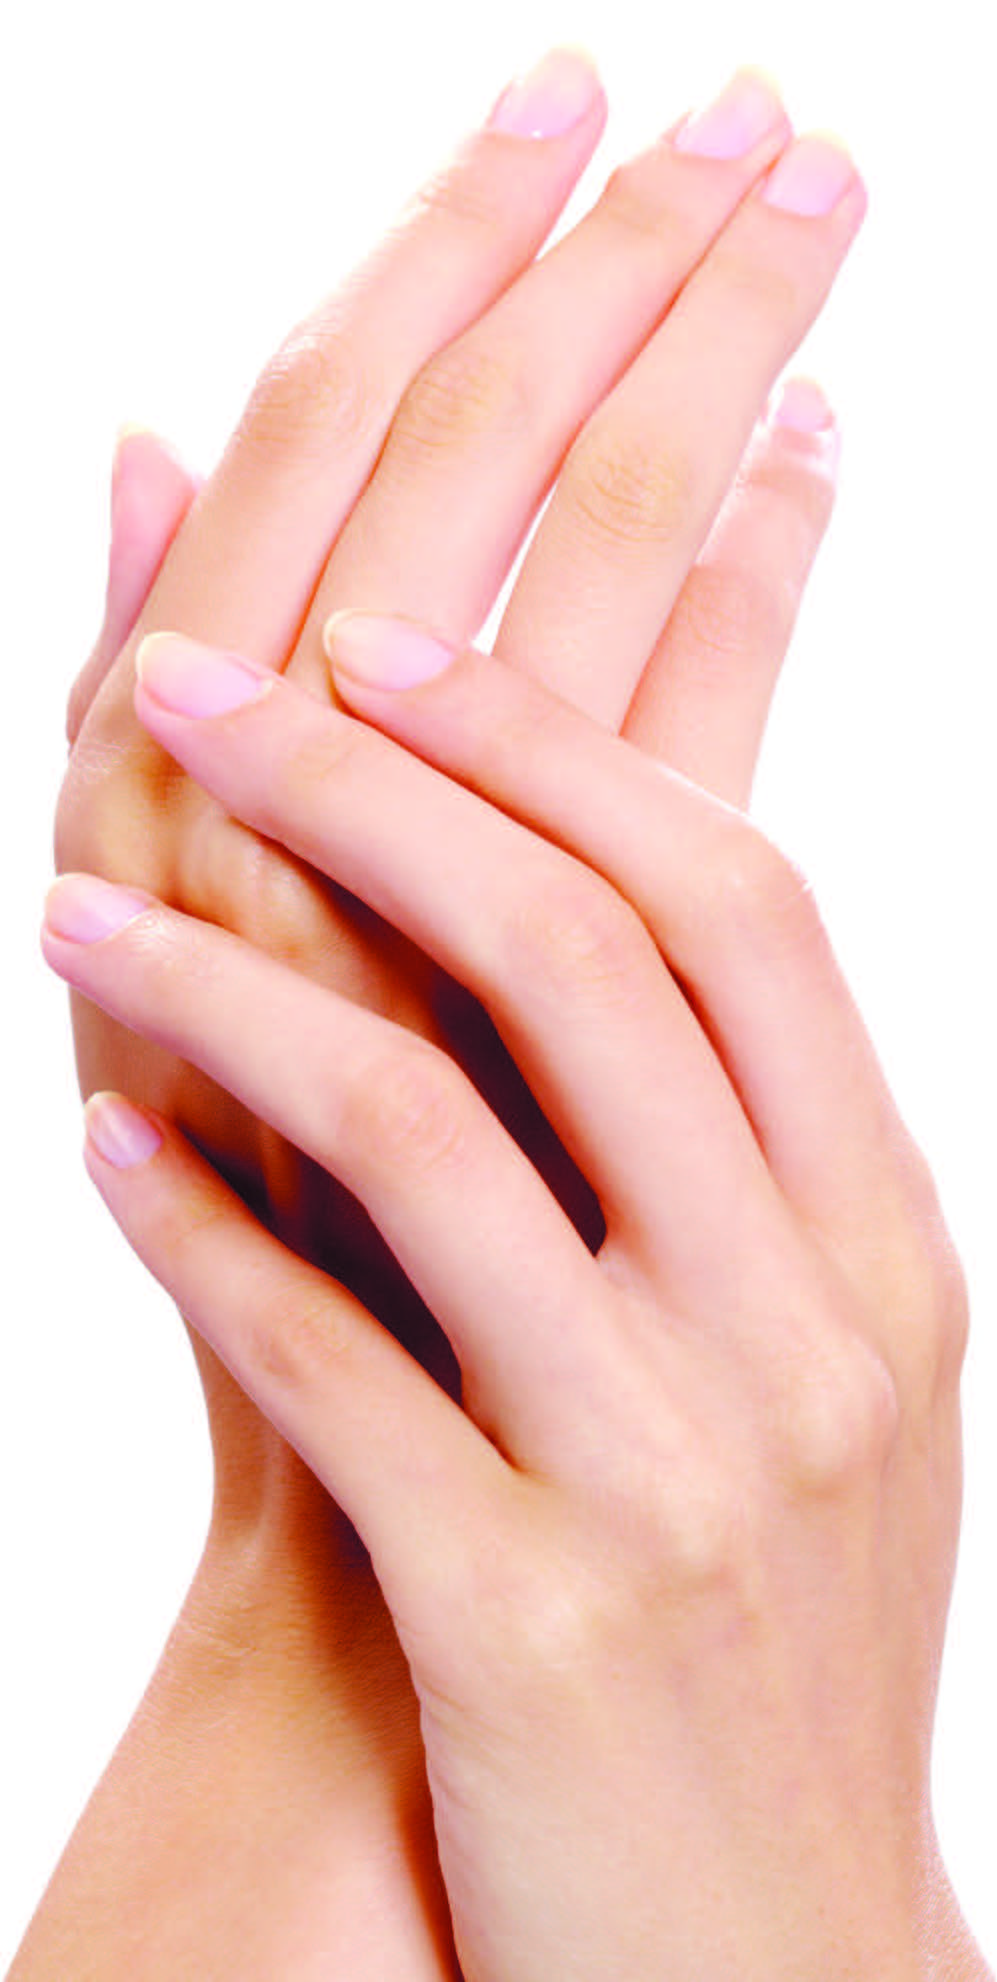 Hand Rejuvenation Therapies